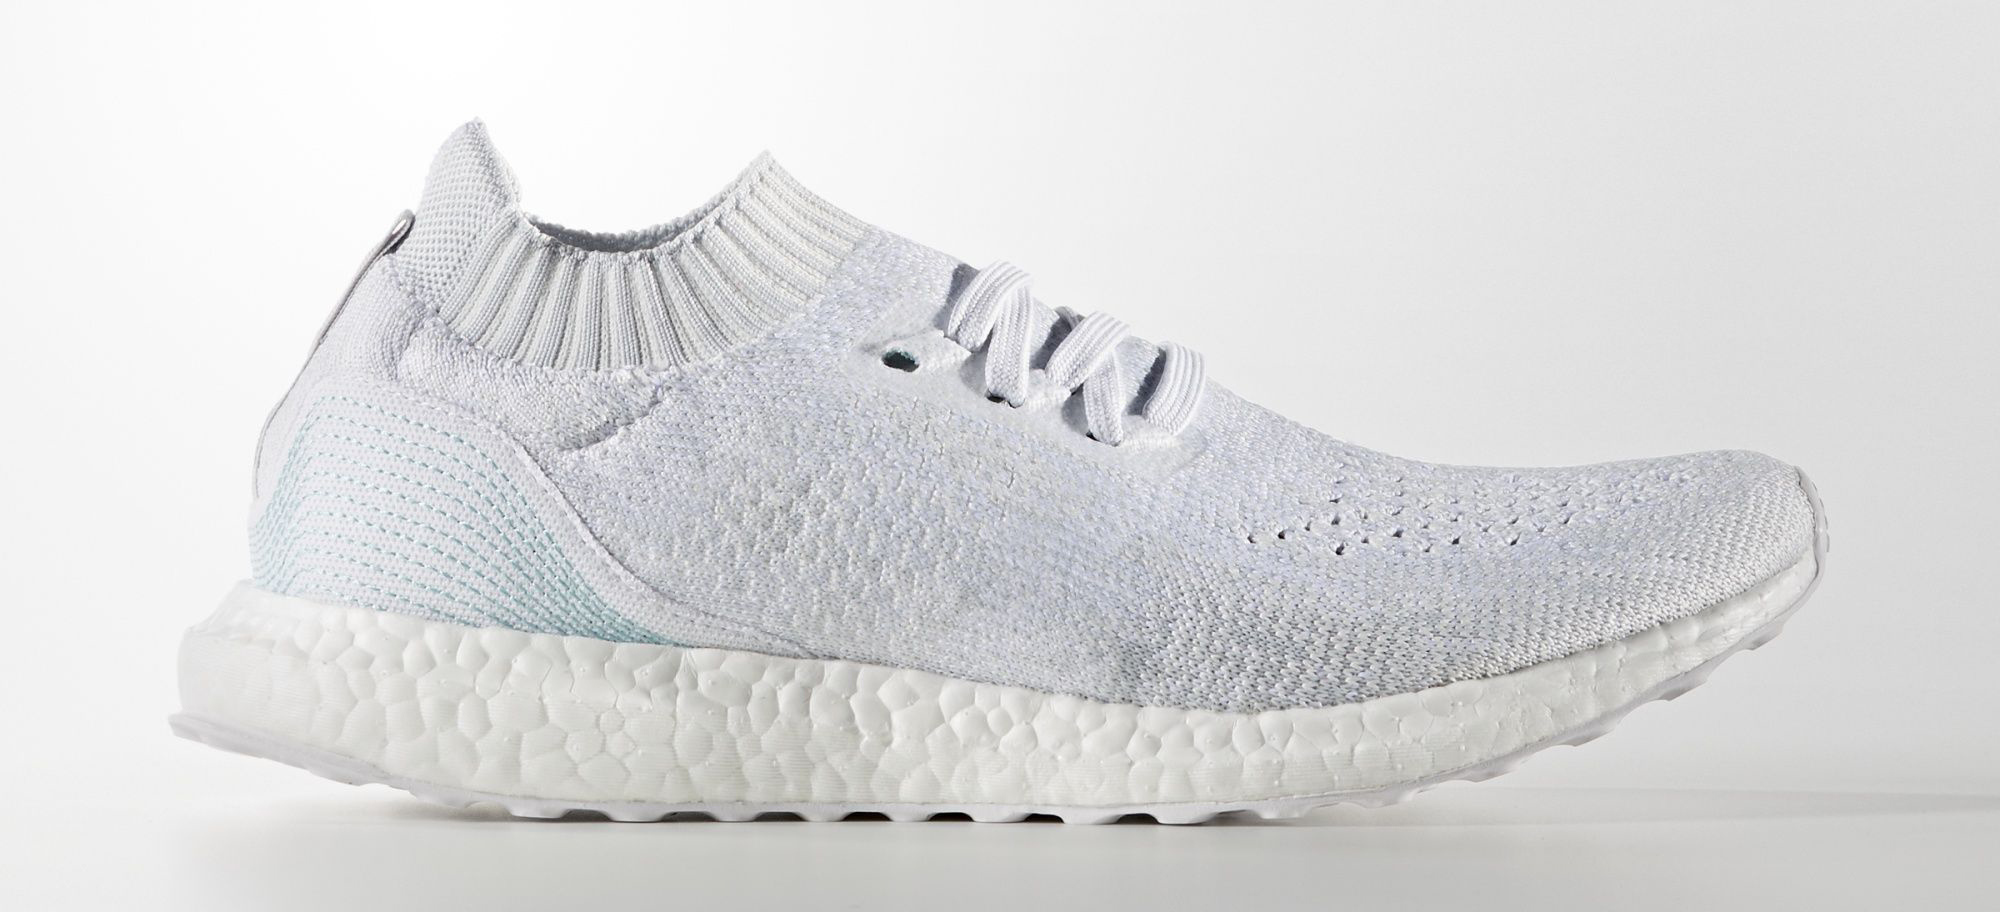 Parley Adidas Ultra Boost Uncaged